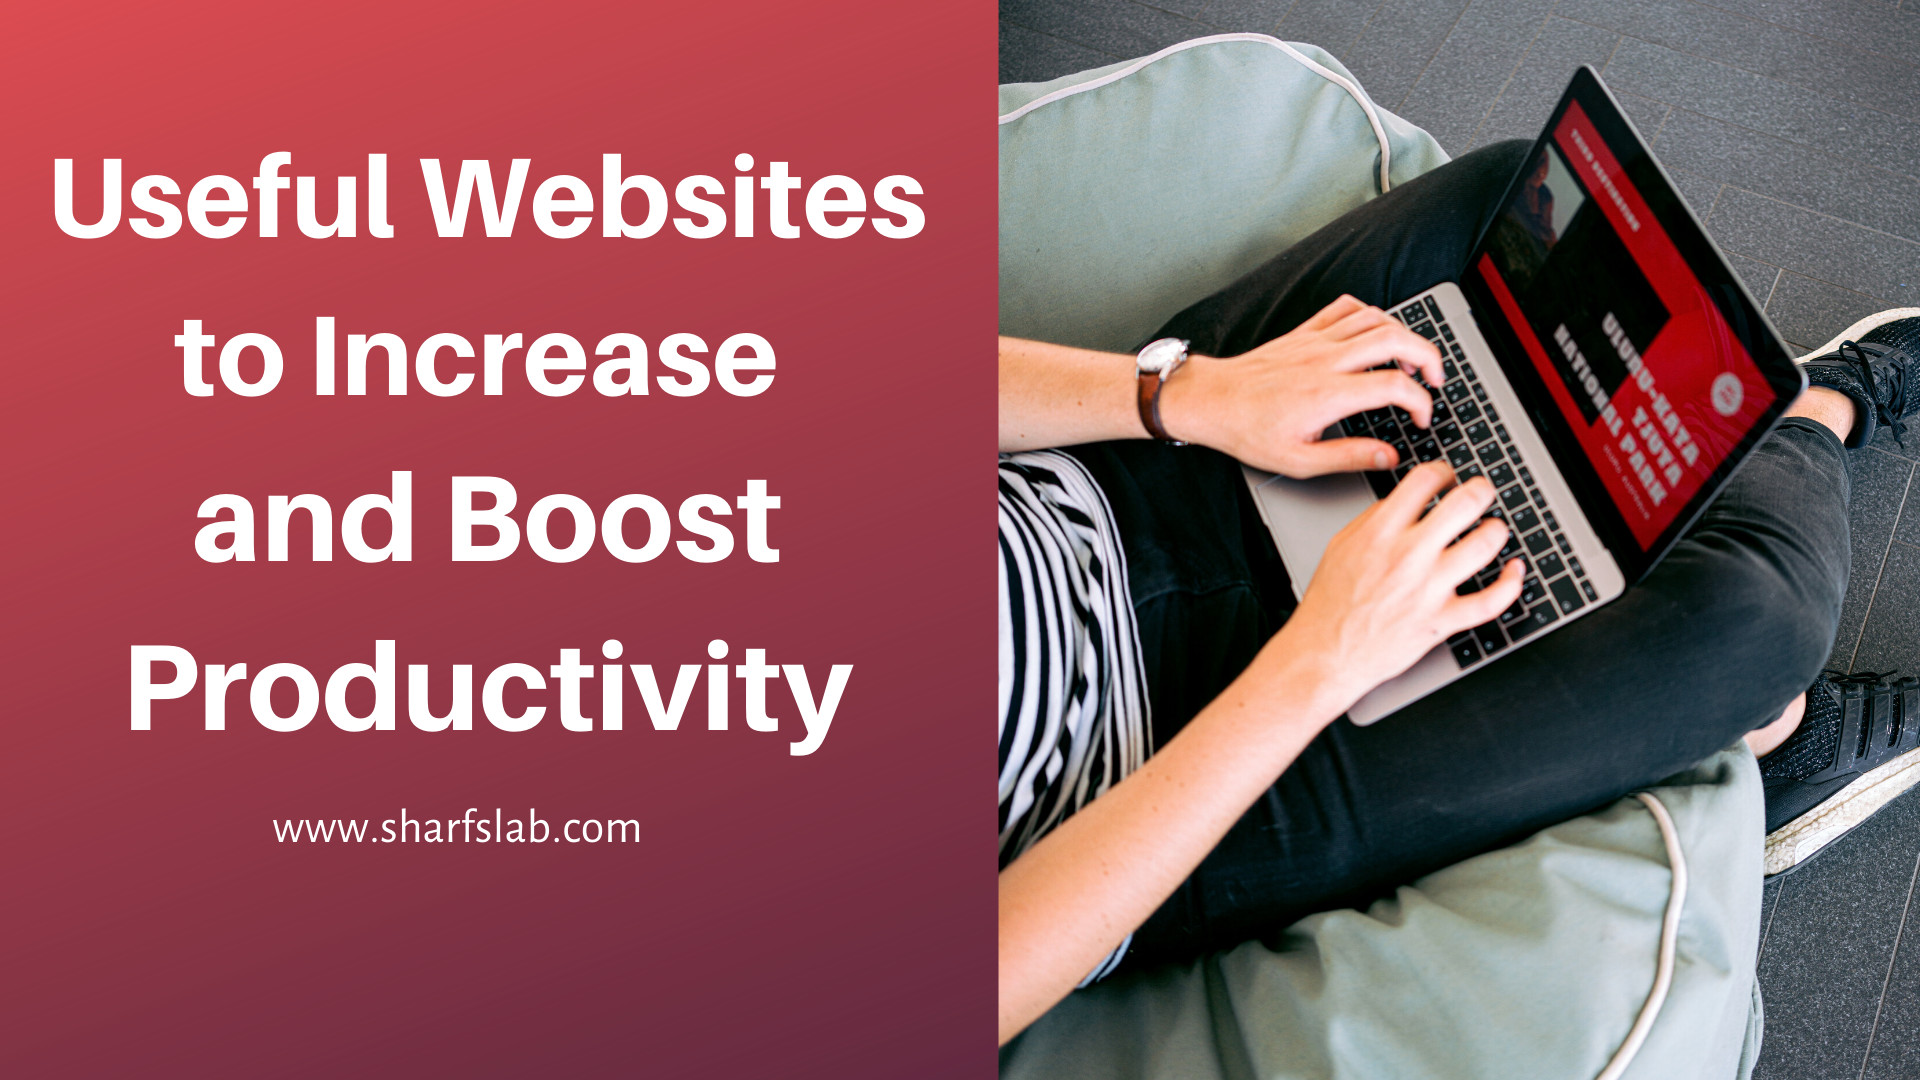 Useful Websites to Increase and Boost Productivity